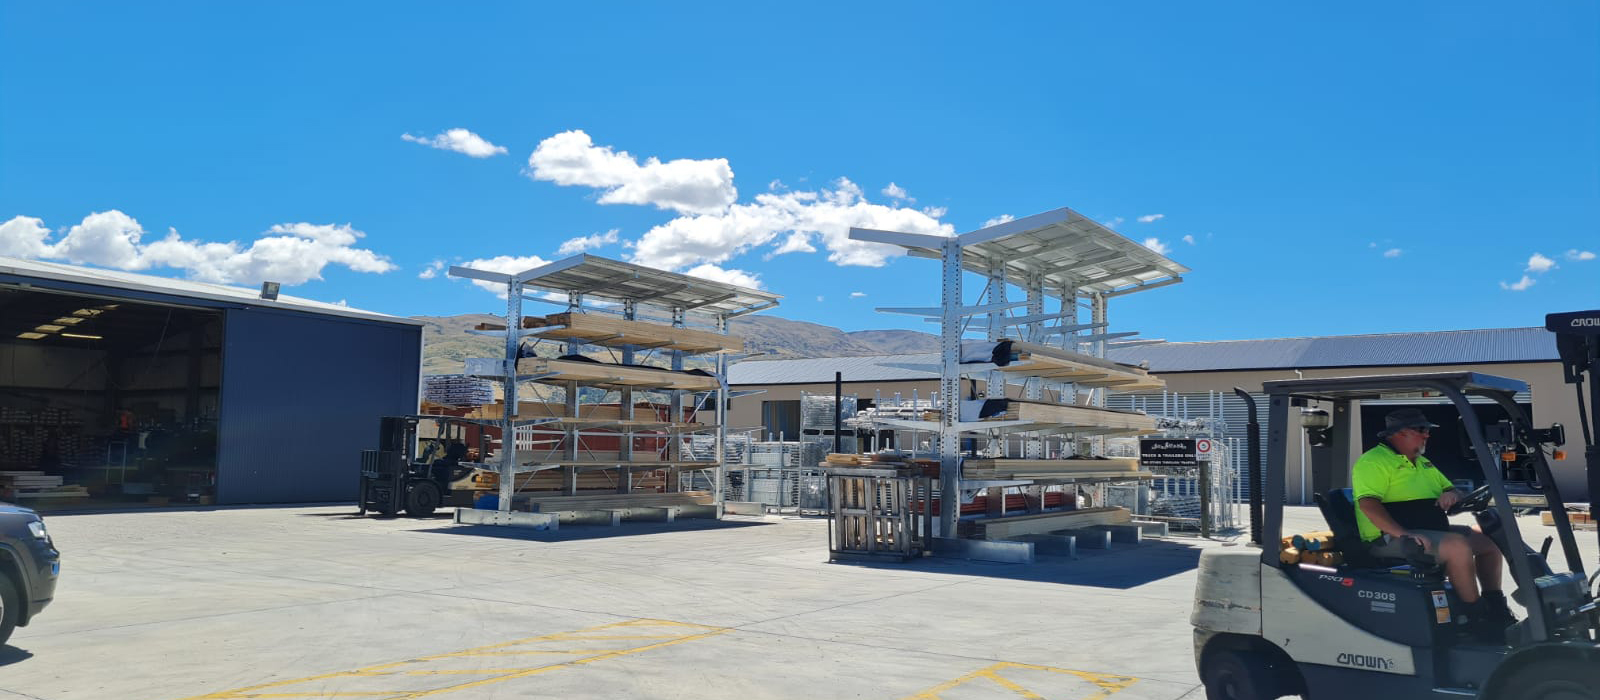 TrussTech Cromwell Cantilever Racking with Roof. iRS Intergrated Roof Structure. Timber Dry Storage